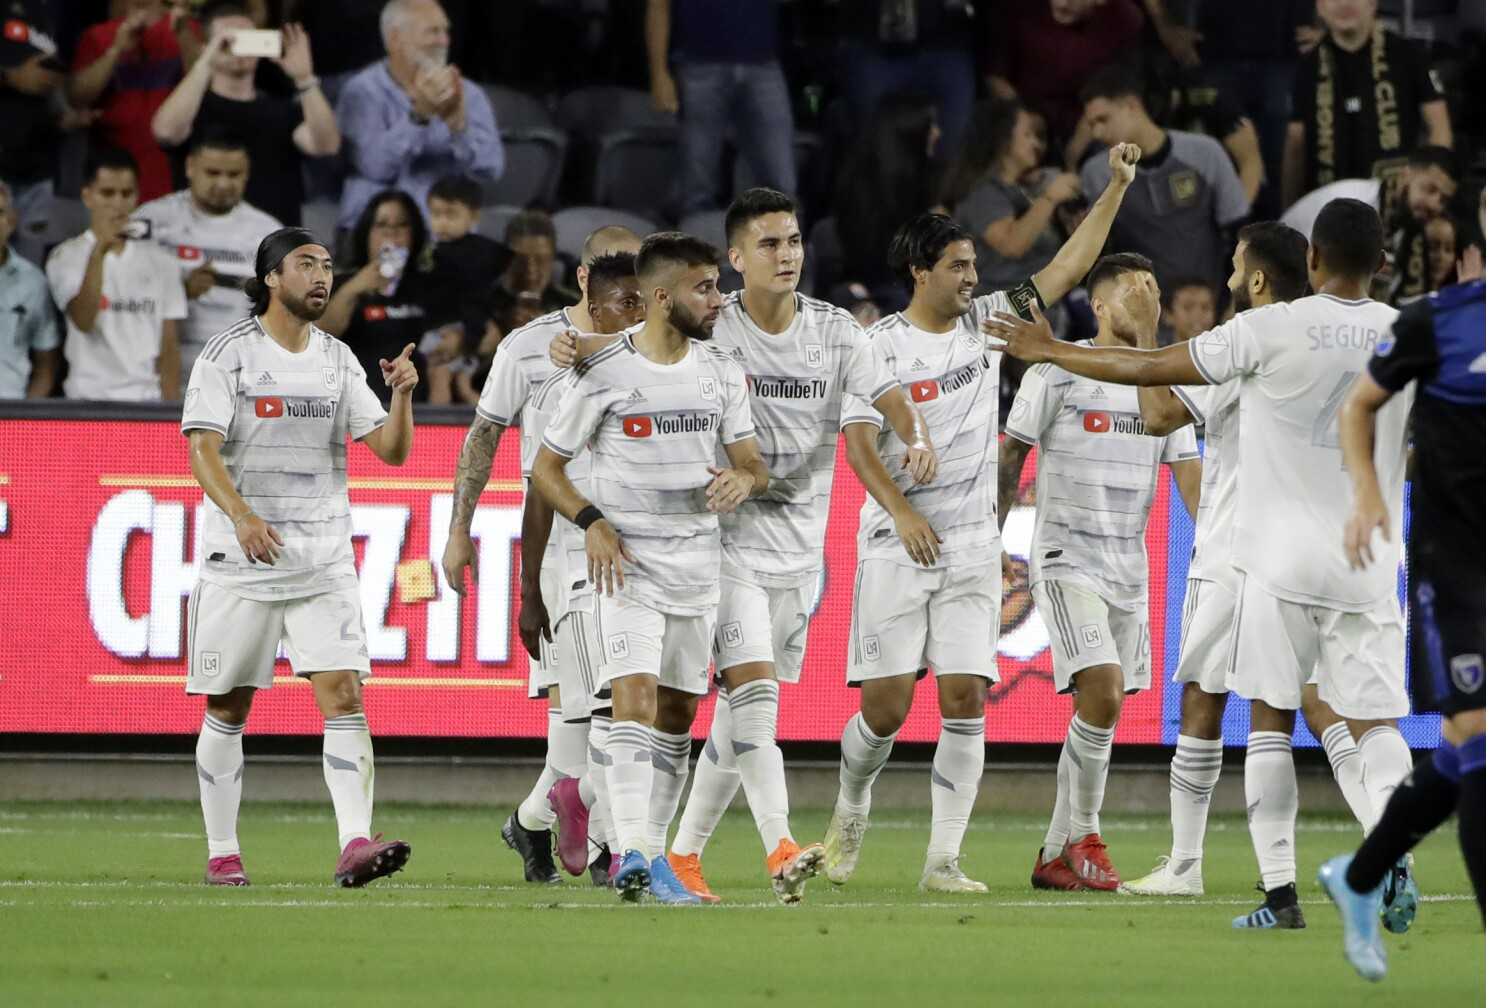 Carlos Vela scores two goals in LAFC's rout over Earthquakes